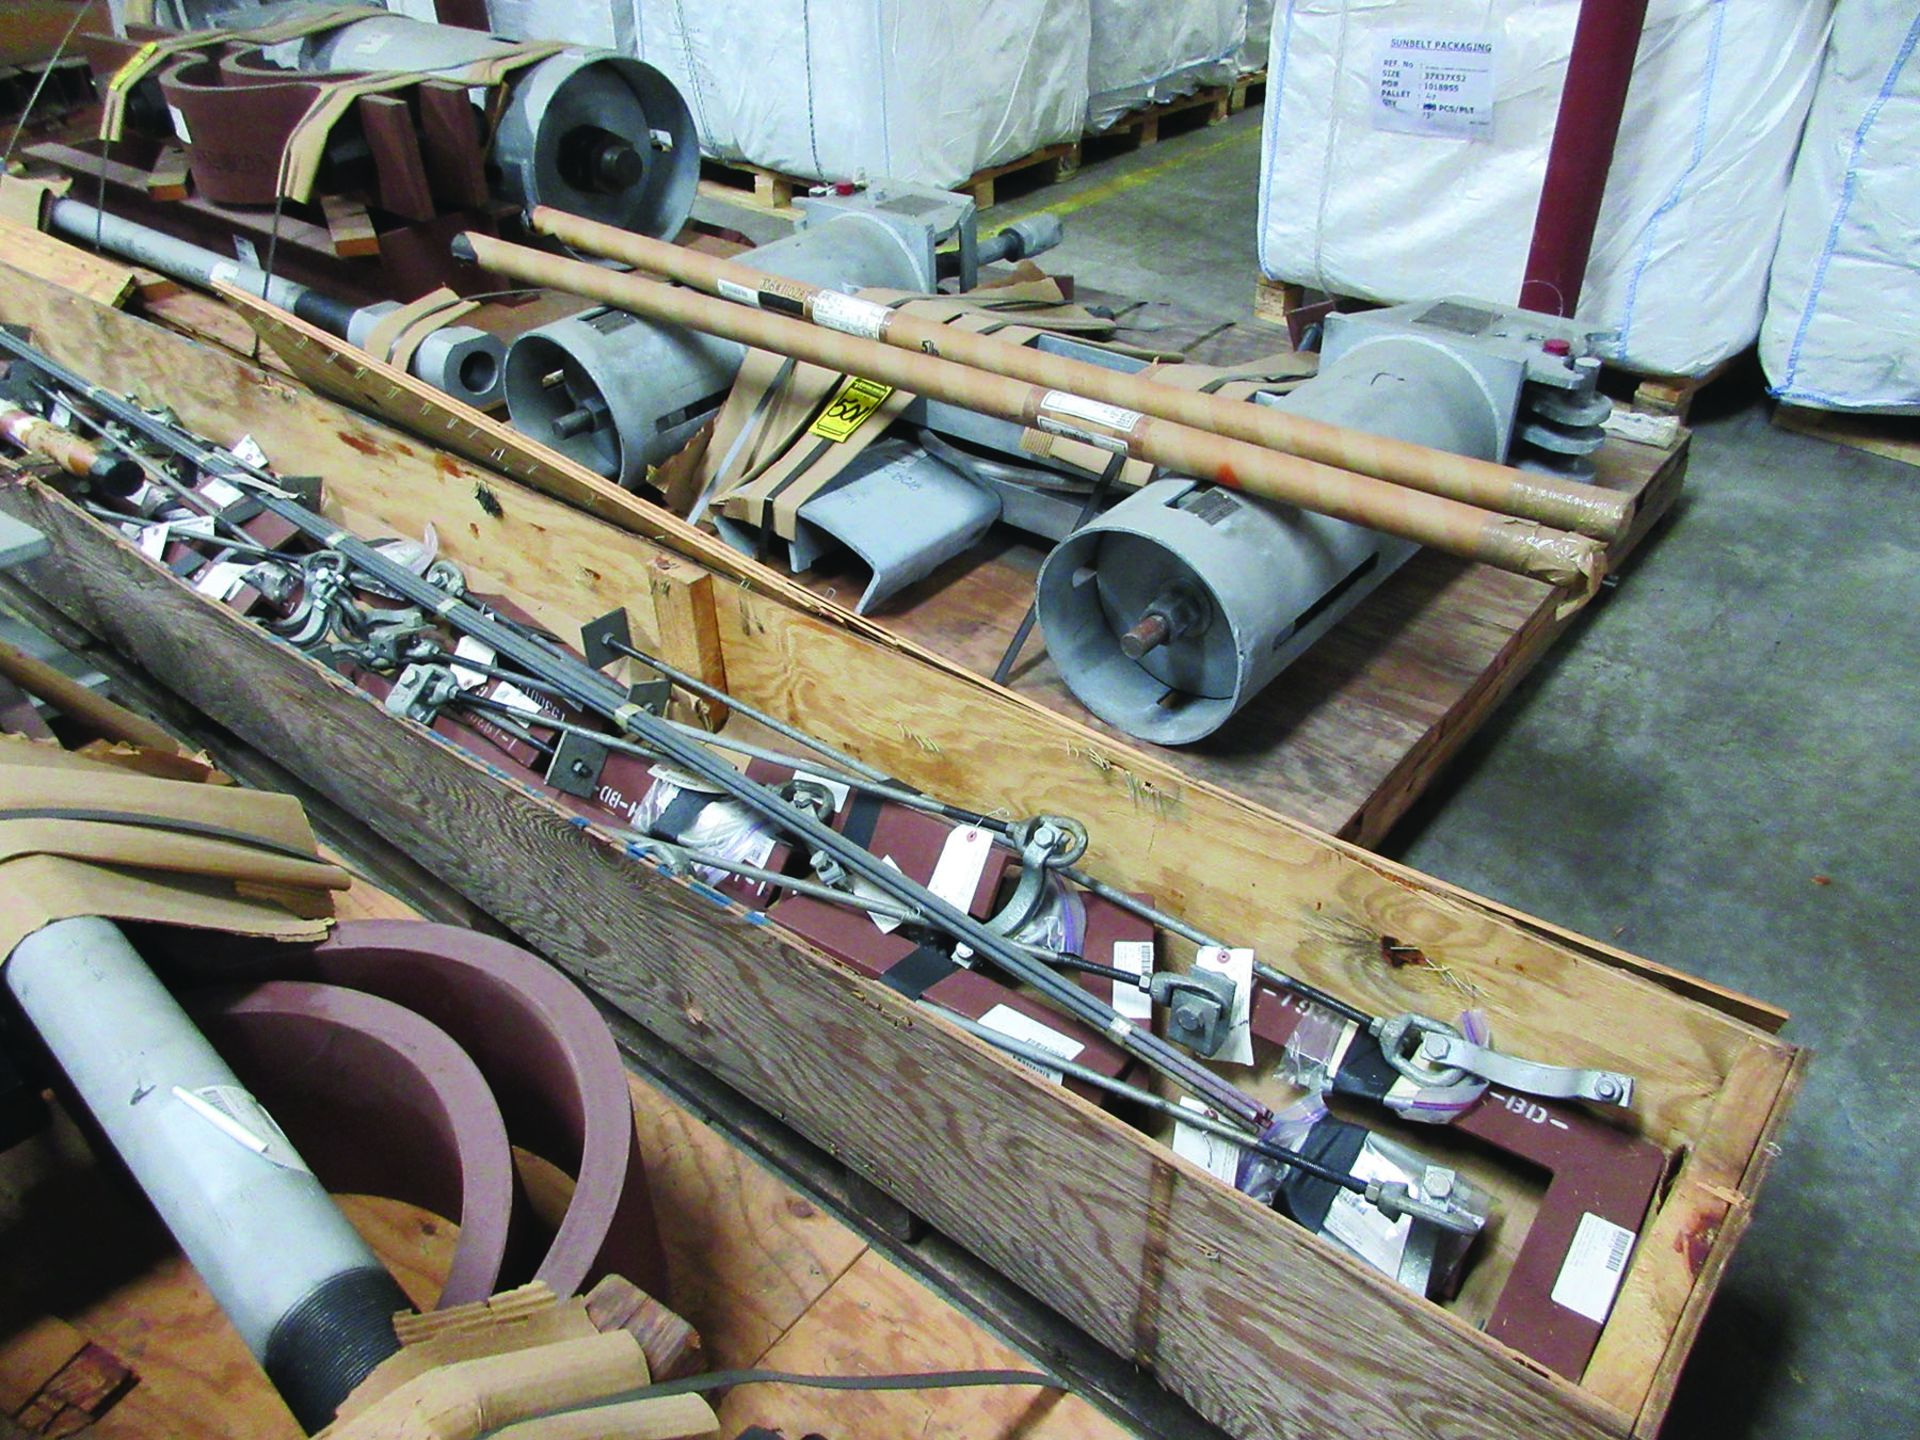 LARGE LOT OF STRUCTURAL STEEL & SPRING CANS, ANGLE IRON, PLATE BRACKETS, BRACING, GRID C5 - Image 4 of 21